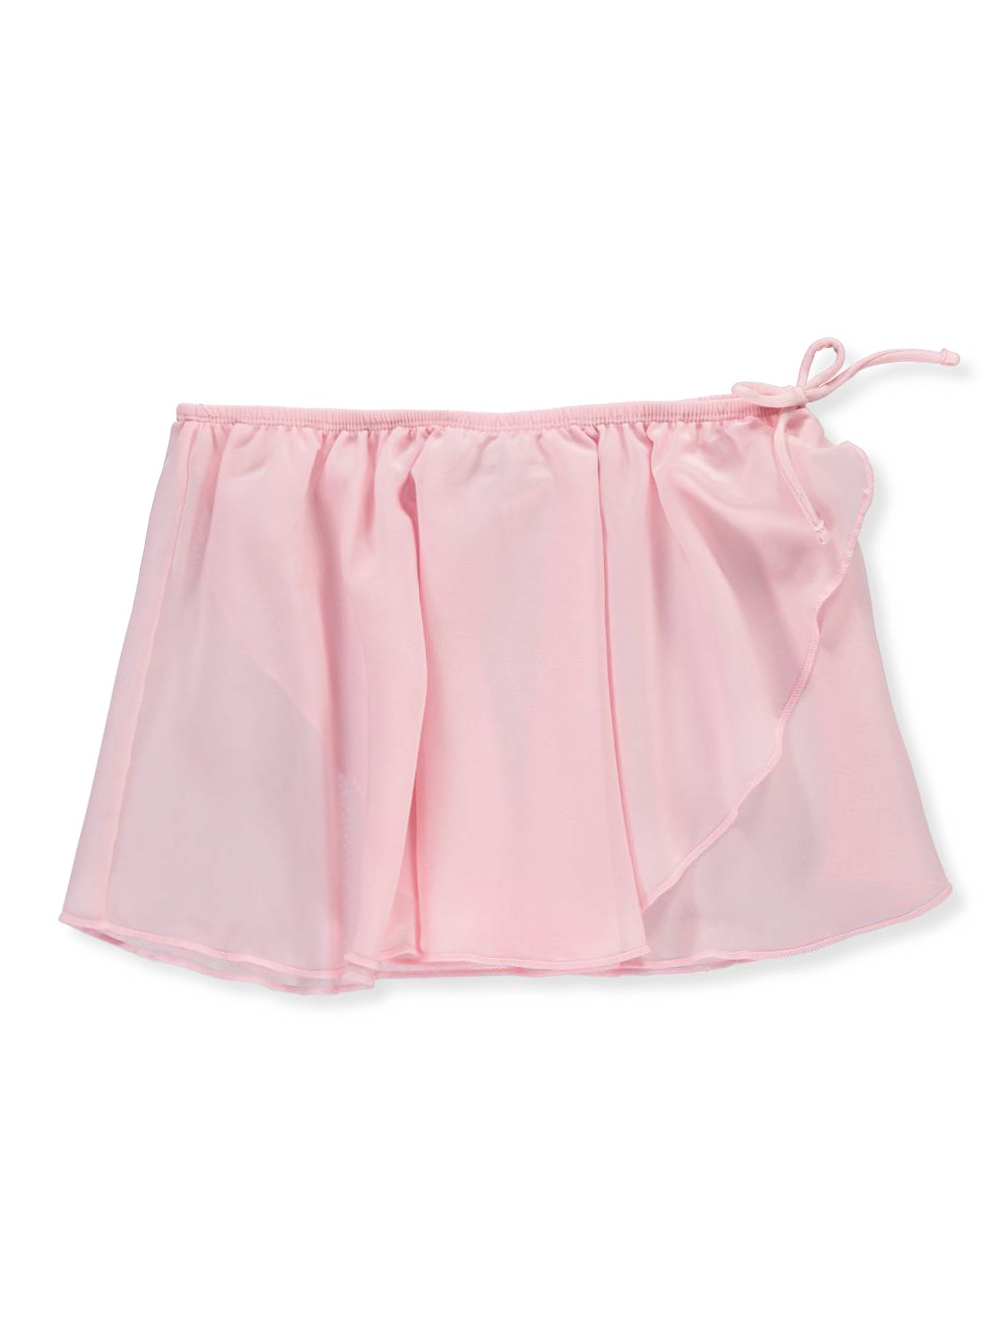 Marilyn Taylor Girls' Dance/Ballet Skirt